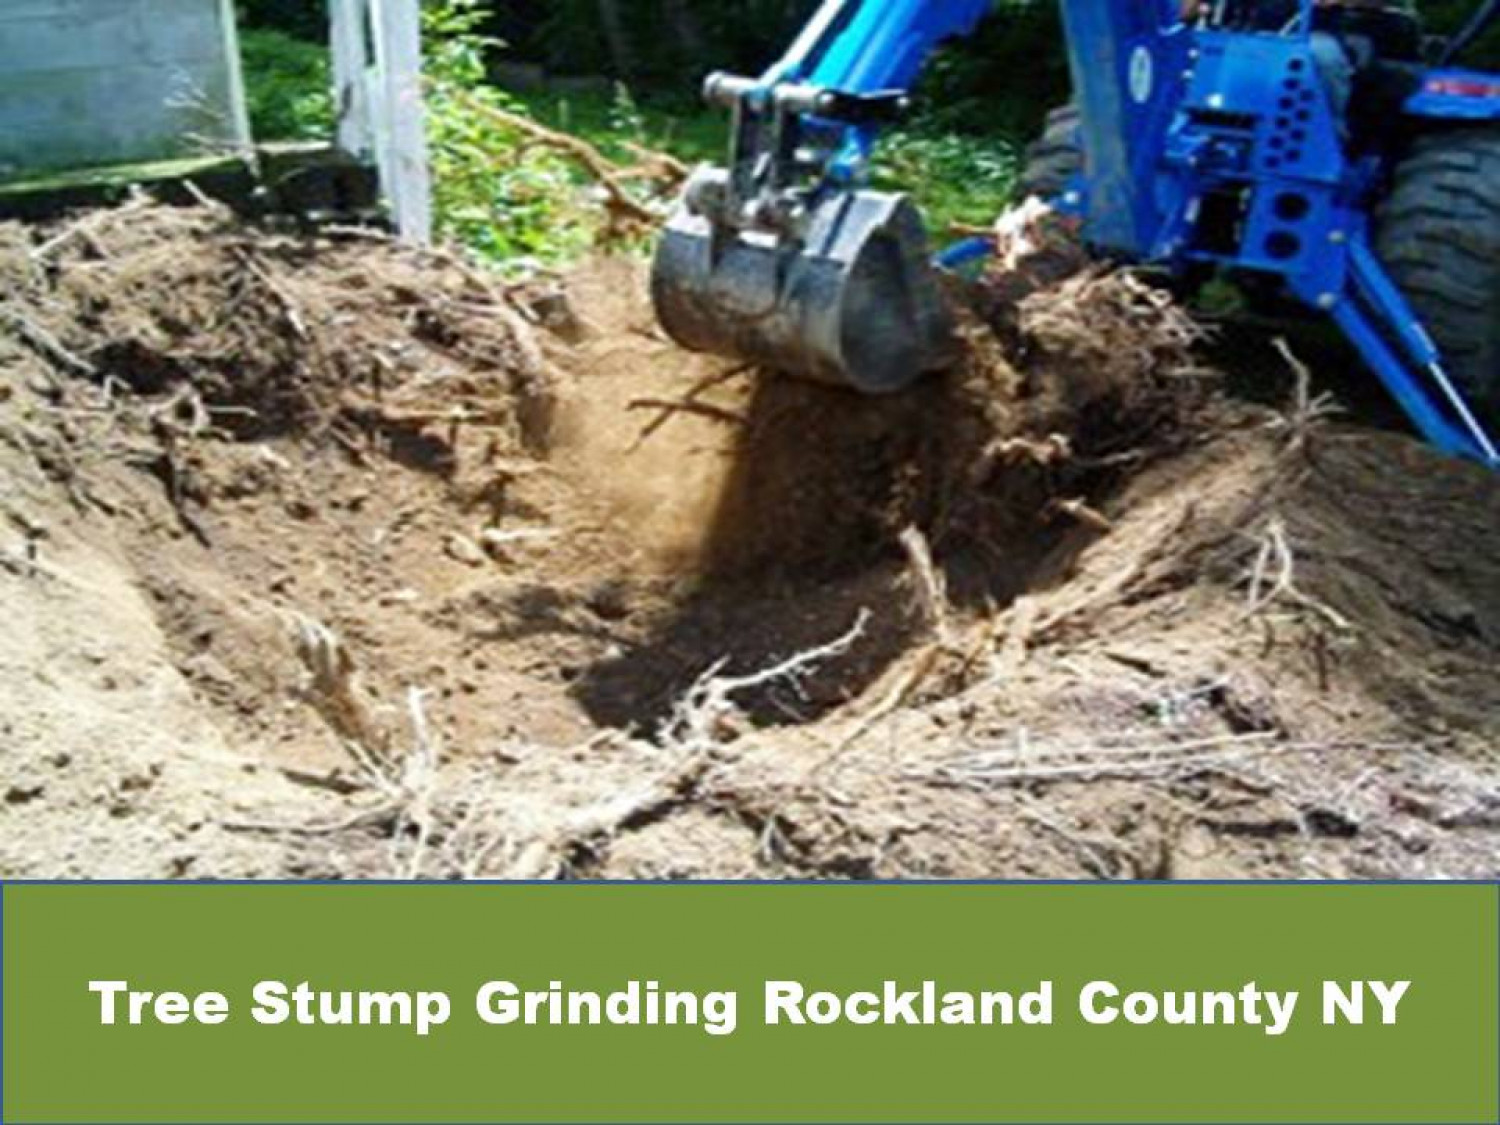 Tree Stump Grinding Rockland County NY Infographic